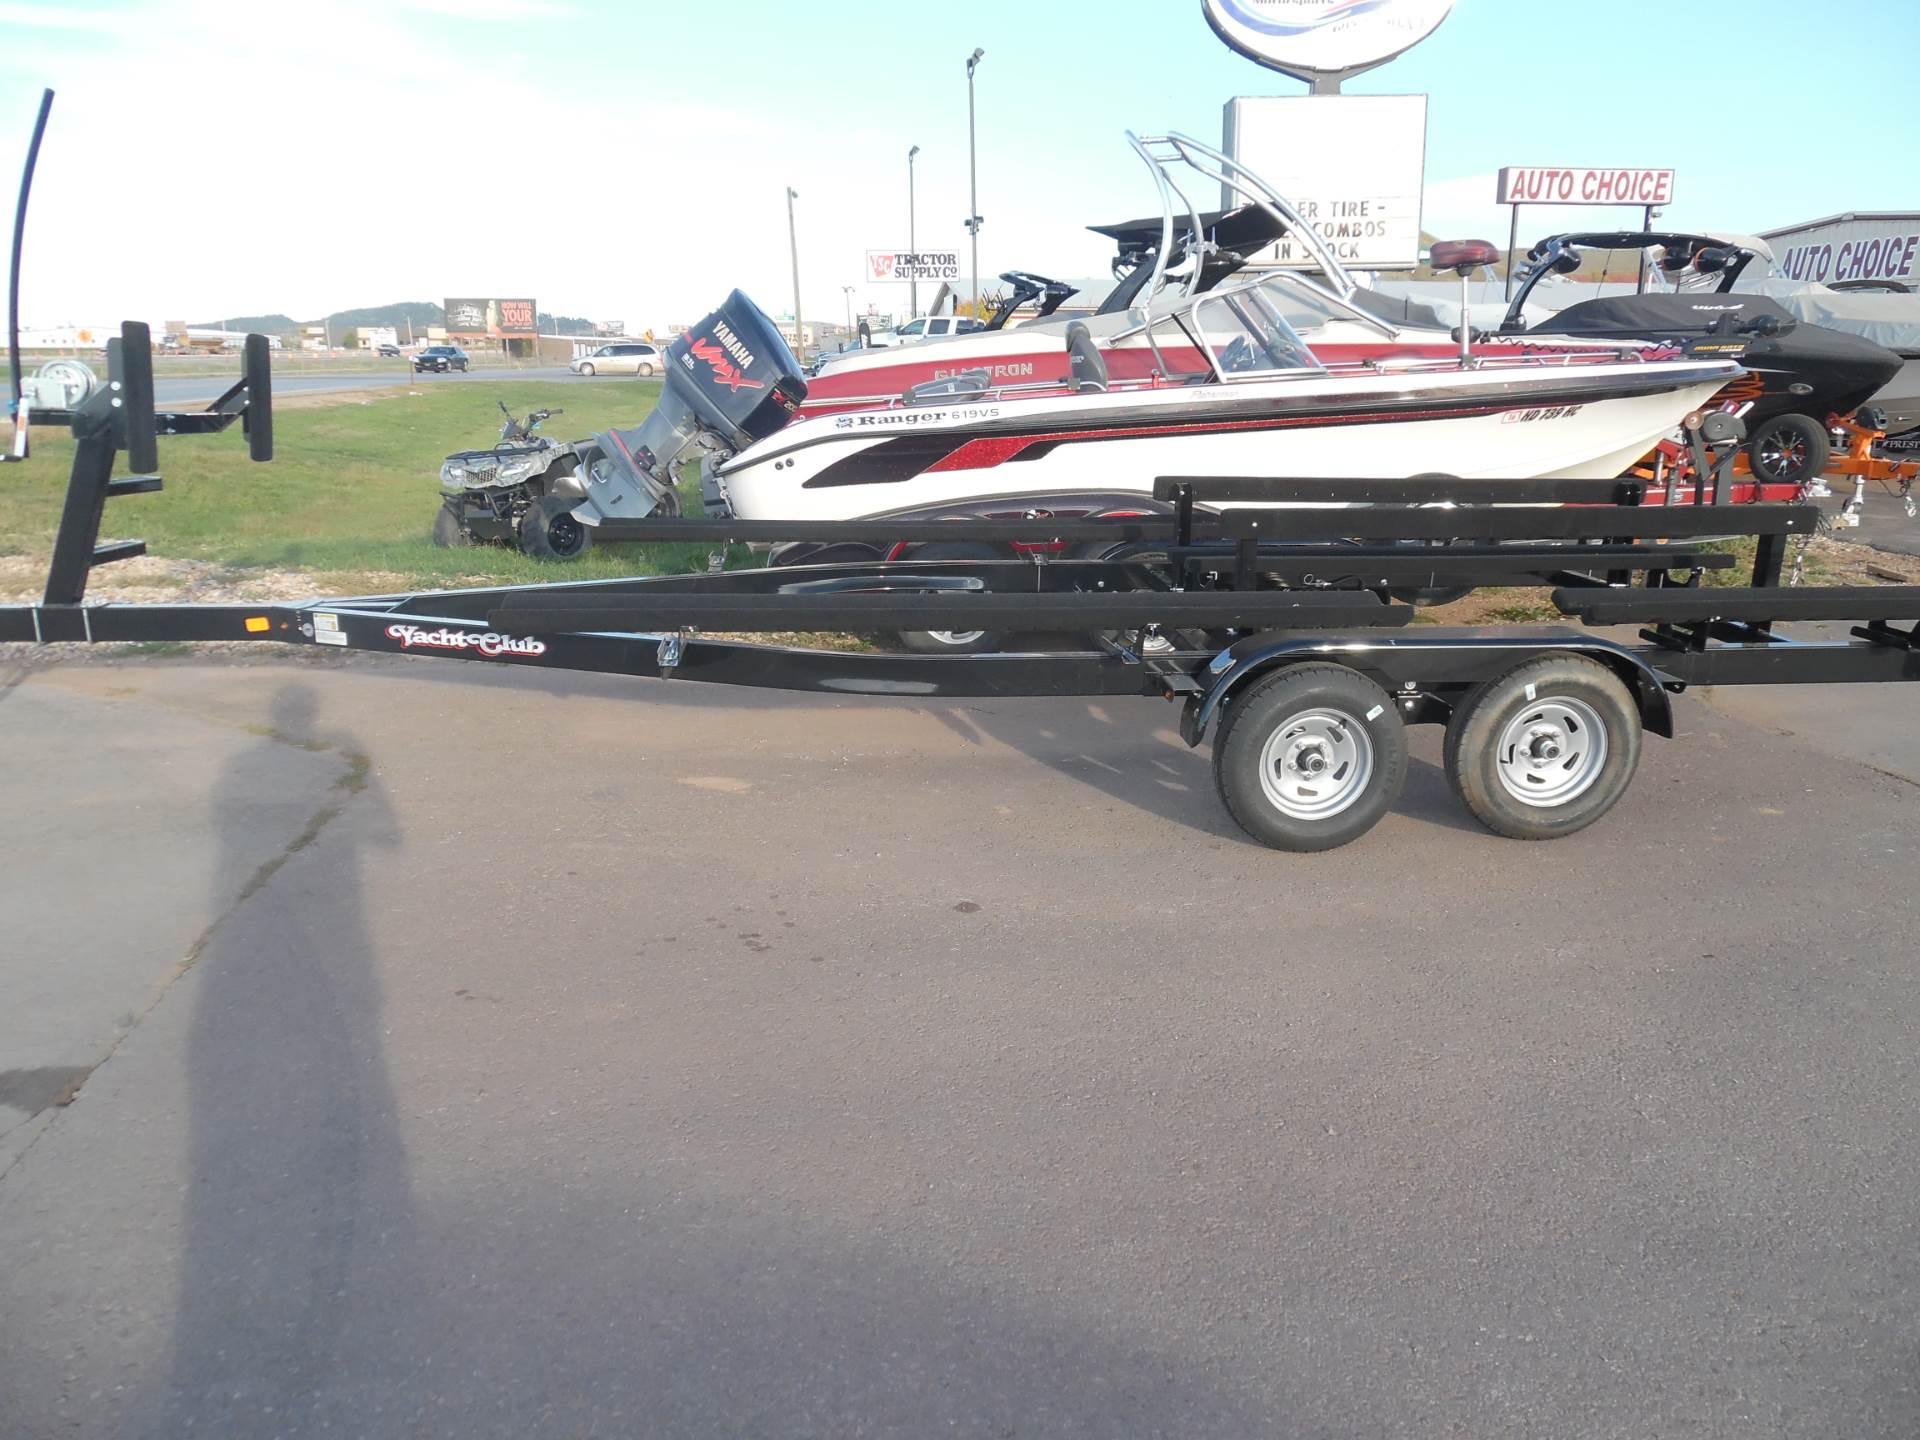 1900 Yacht Club Tandem Axle Pontoon Trailers for 18'-28' pontoons and tri-toons- in stock! in Spearfish, South Dakota - Photo 3